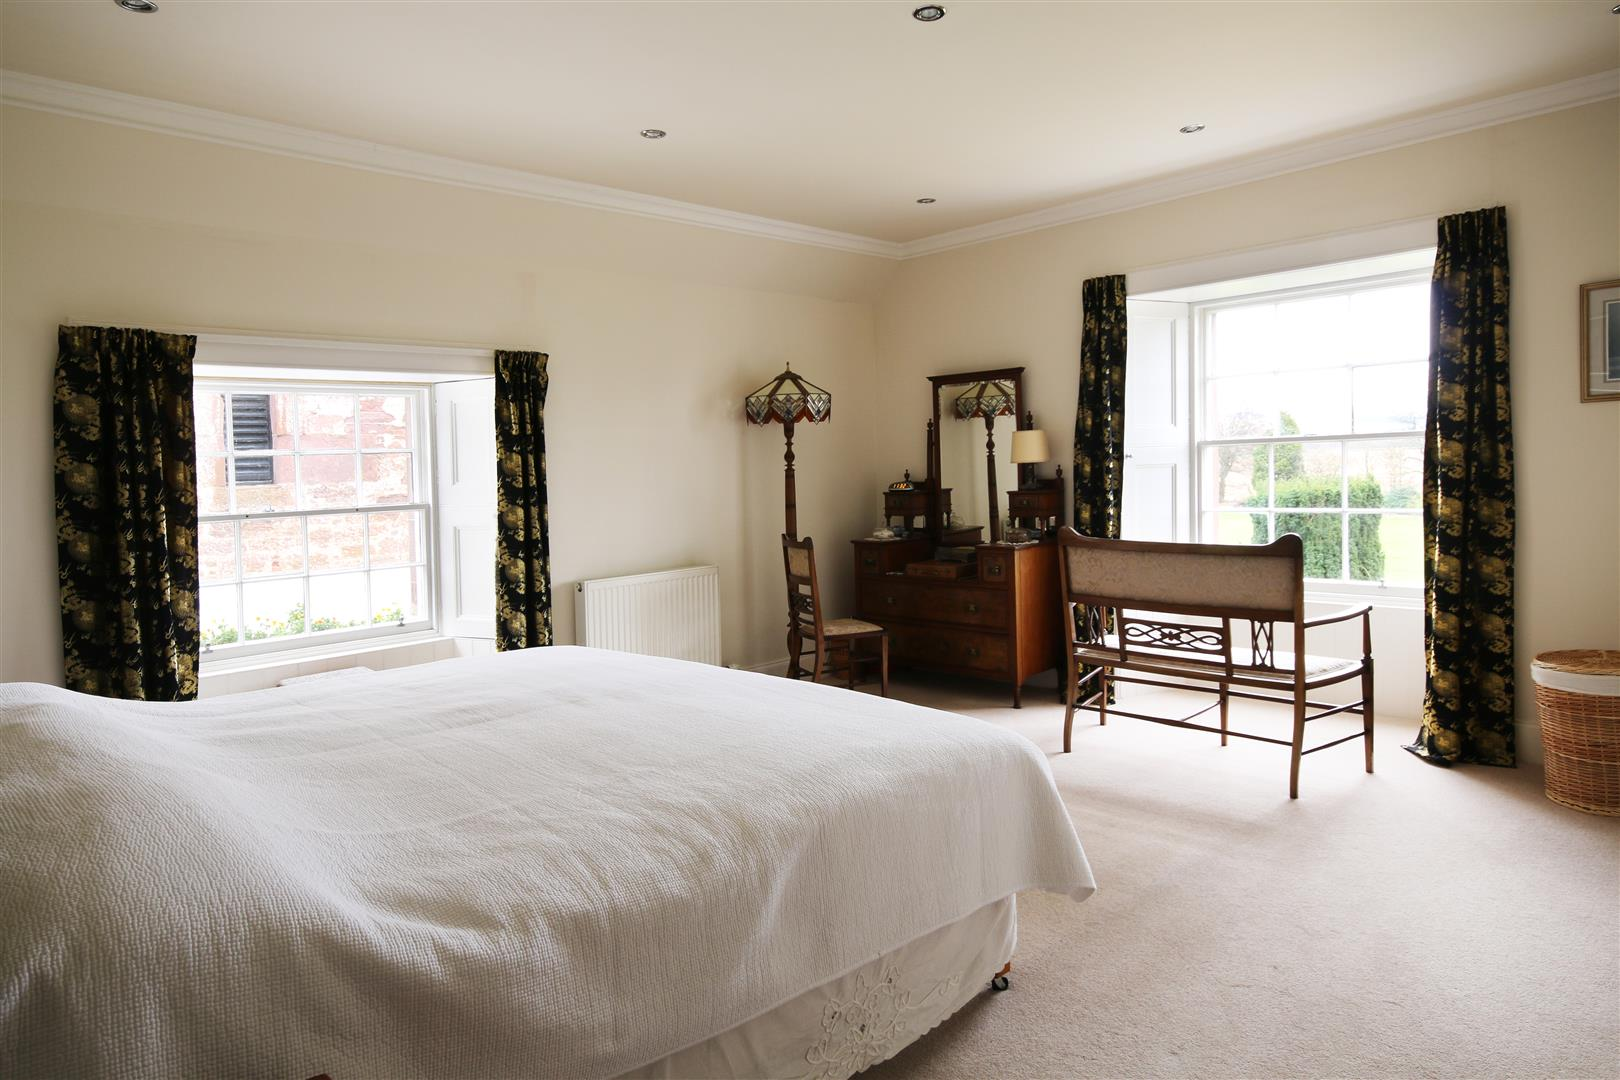 Lowes Bedroom Furniture The Lowes Arthurstone House Next Home Online